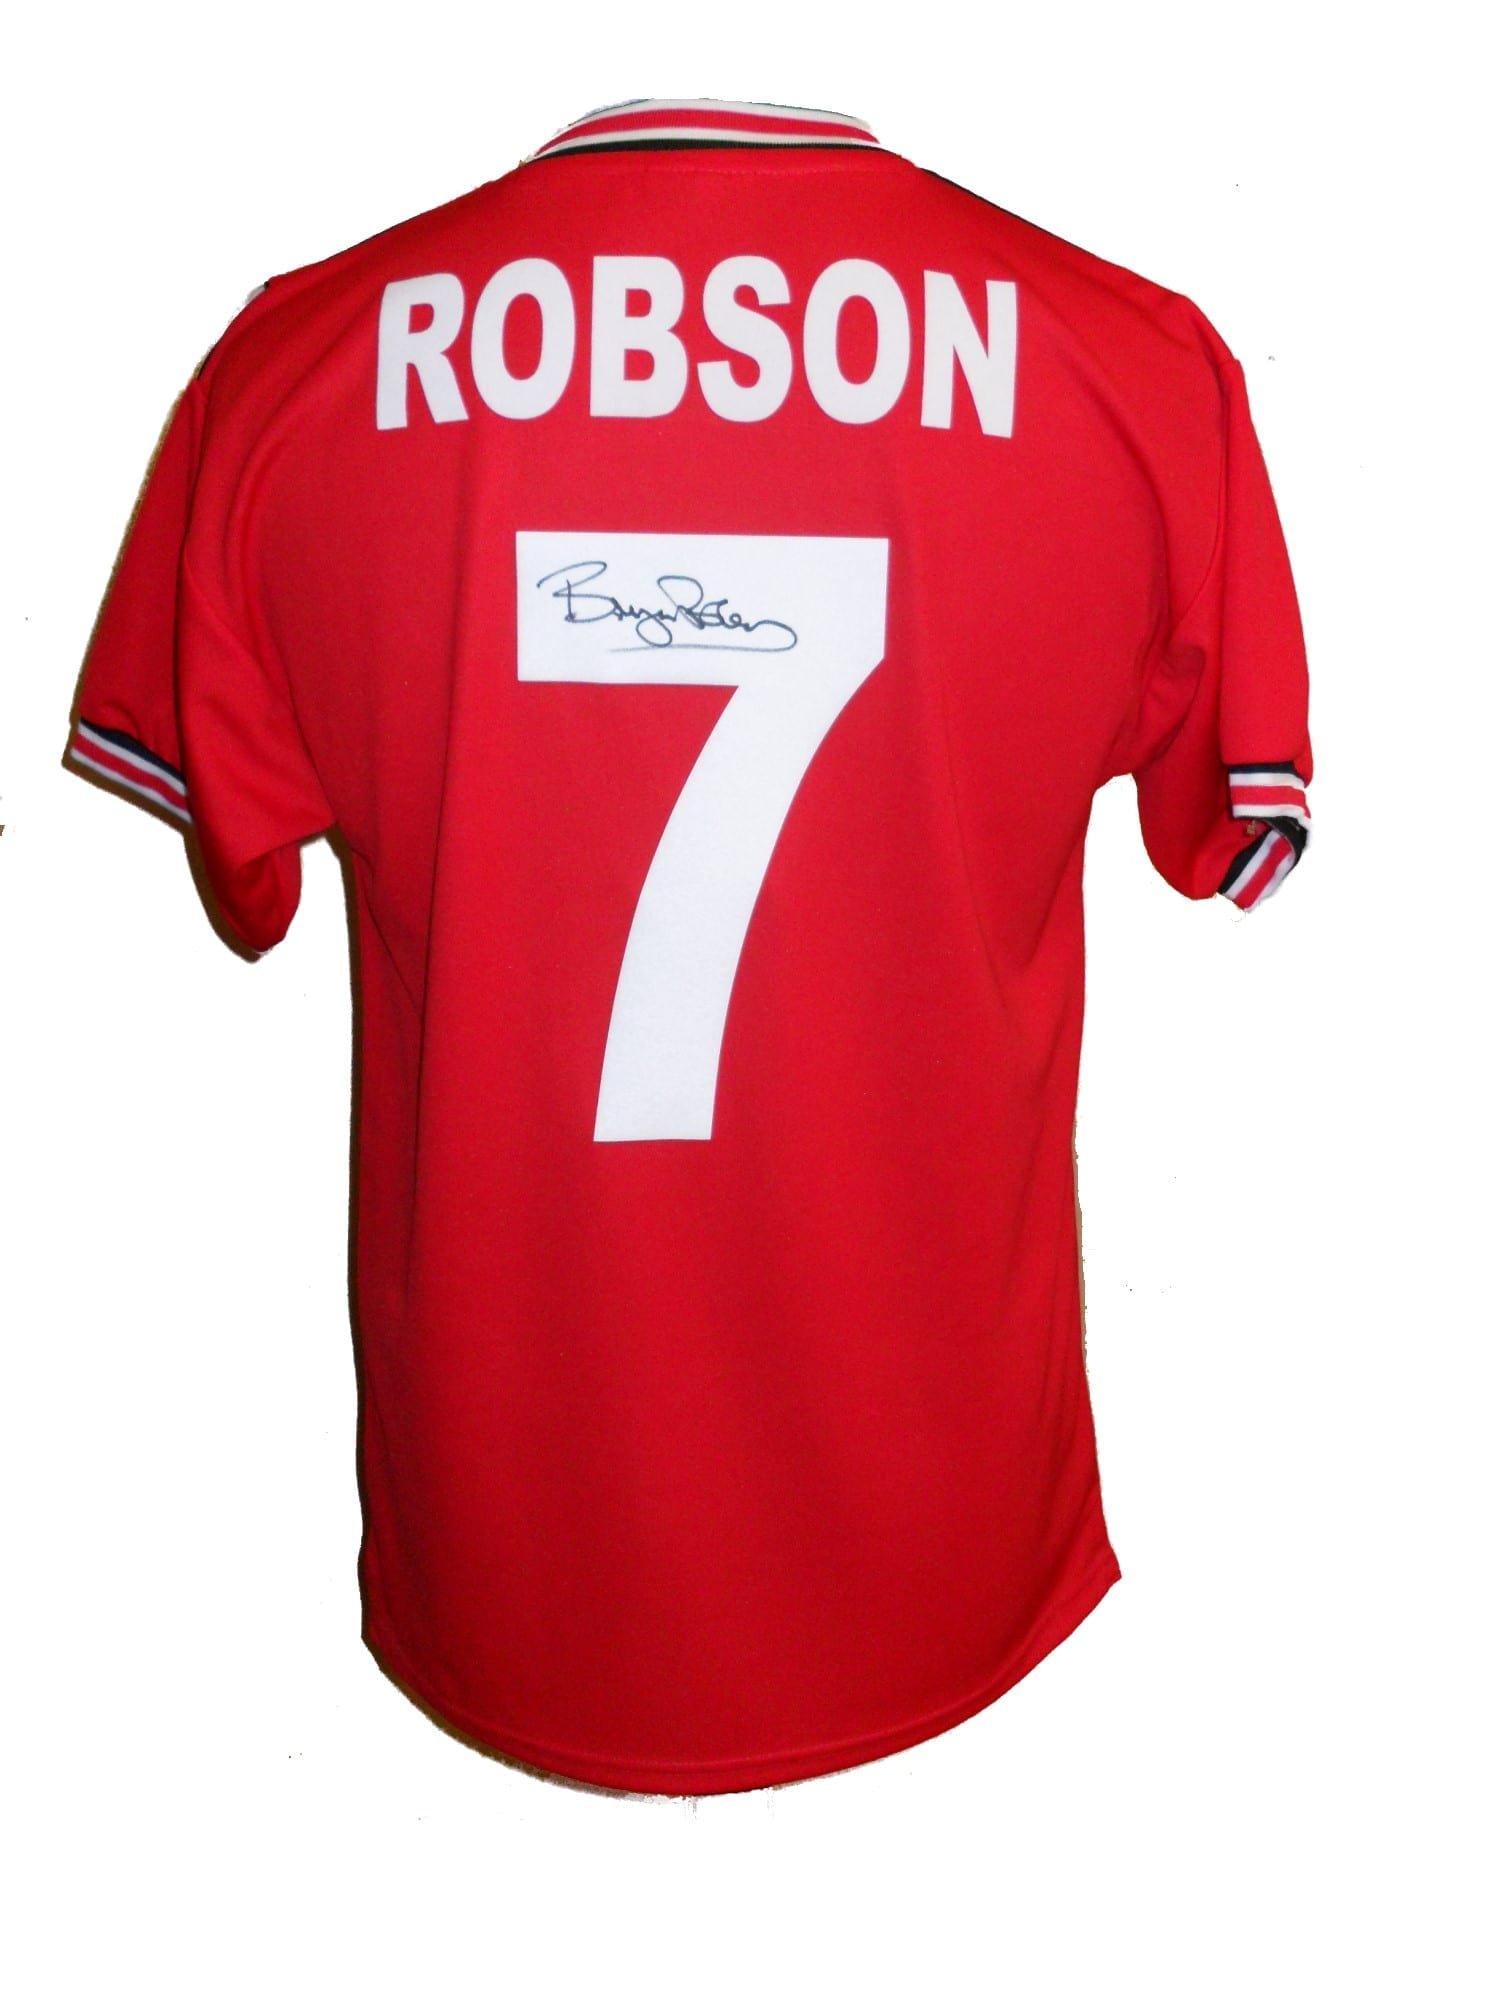 51e137082b8 Bryan Robson Signed Manchester United shirt - Unframed